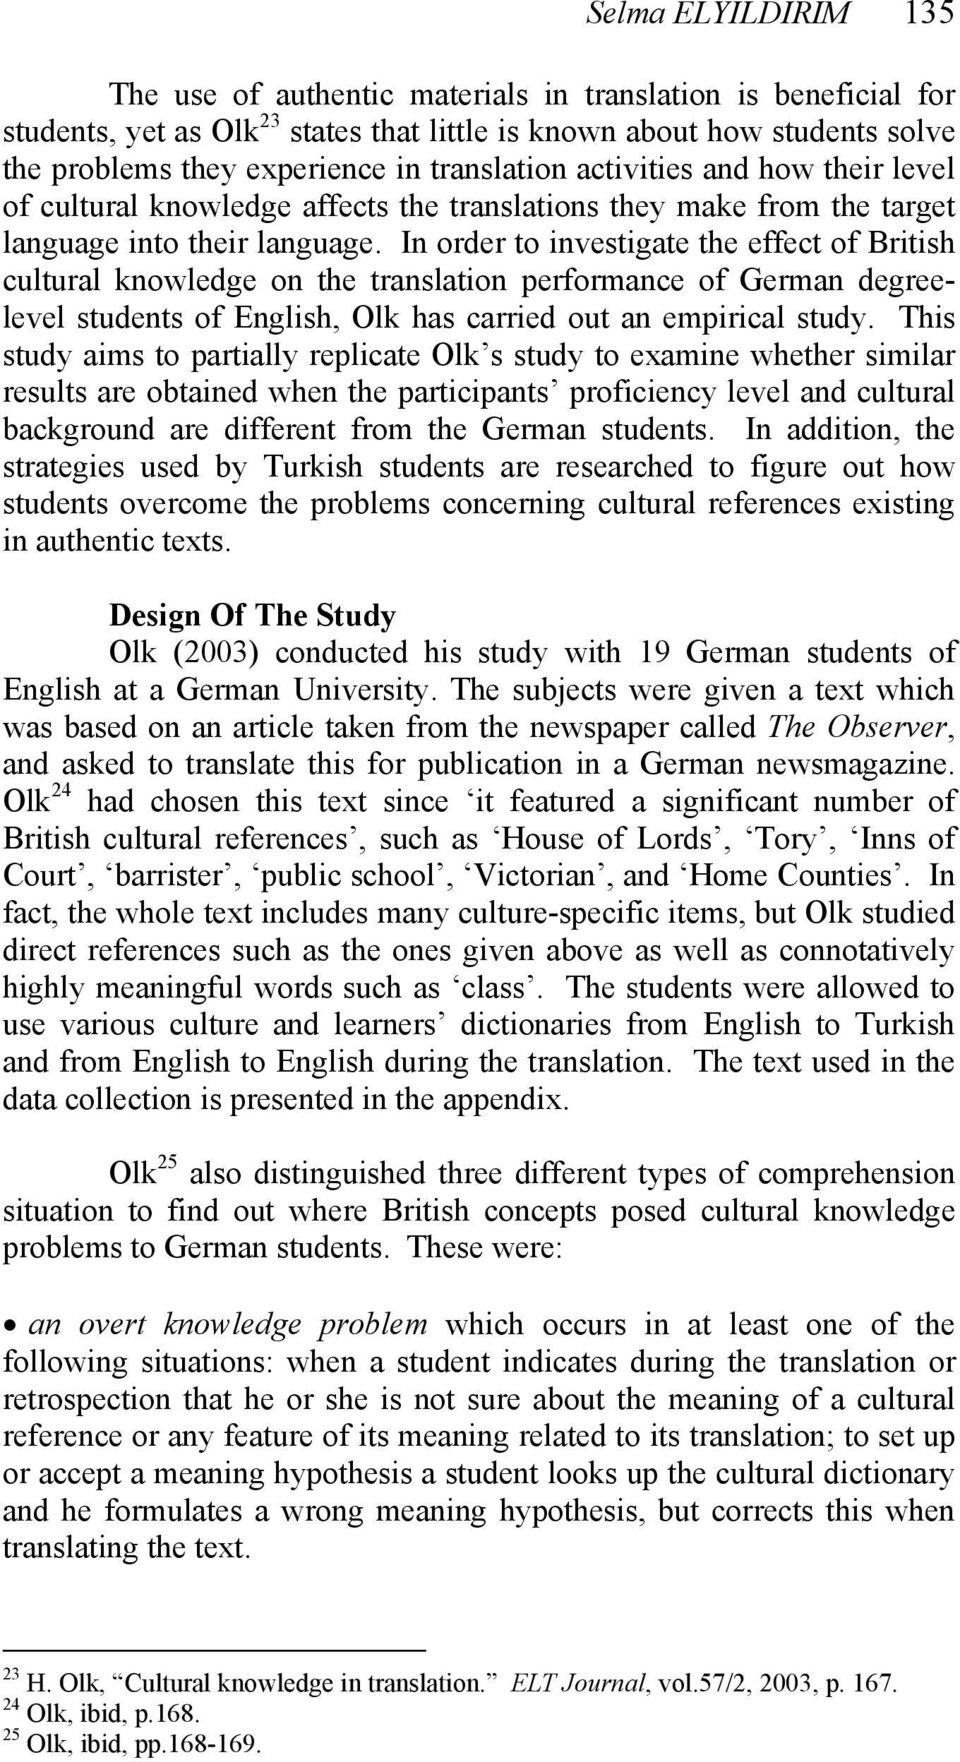 In order to investigate the effect of British cultural knowledge on the translation performance of German degreelevel students of English, Olk has carried out an empirical study.